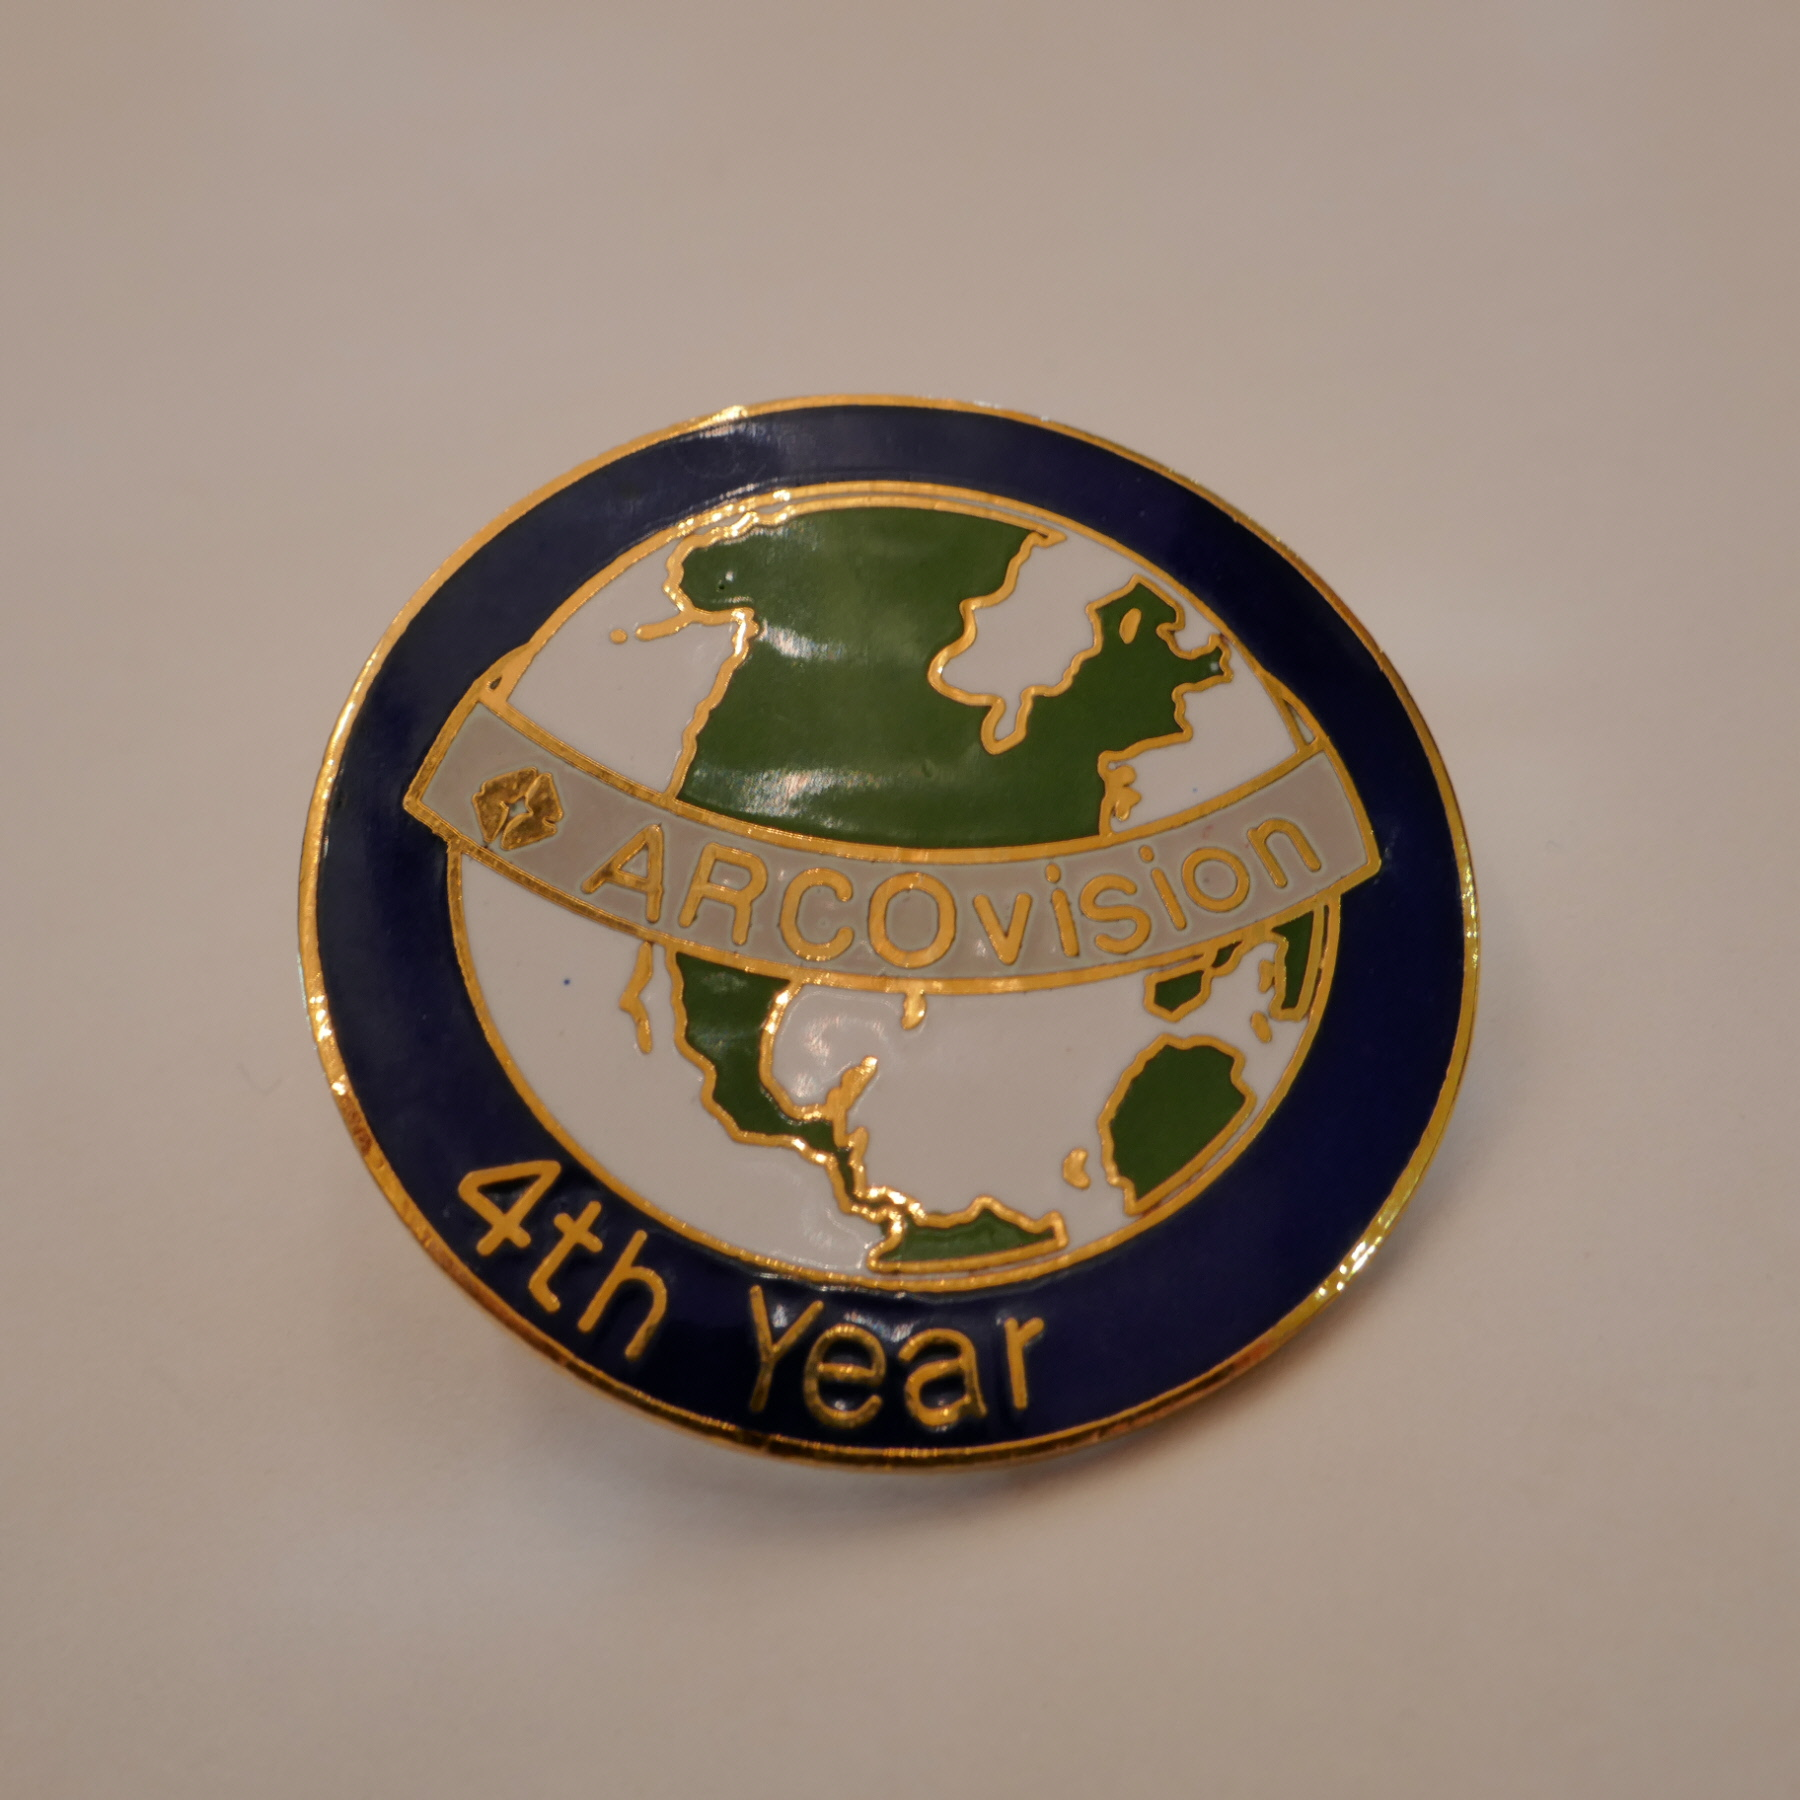 ARCO vision 4th year pins